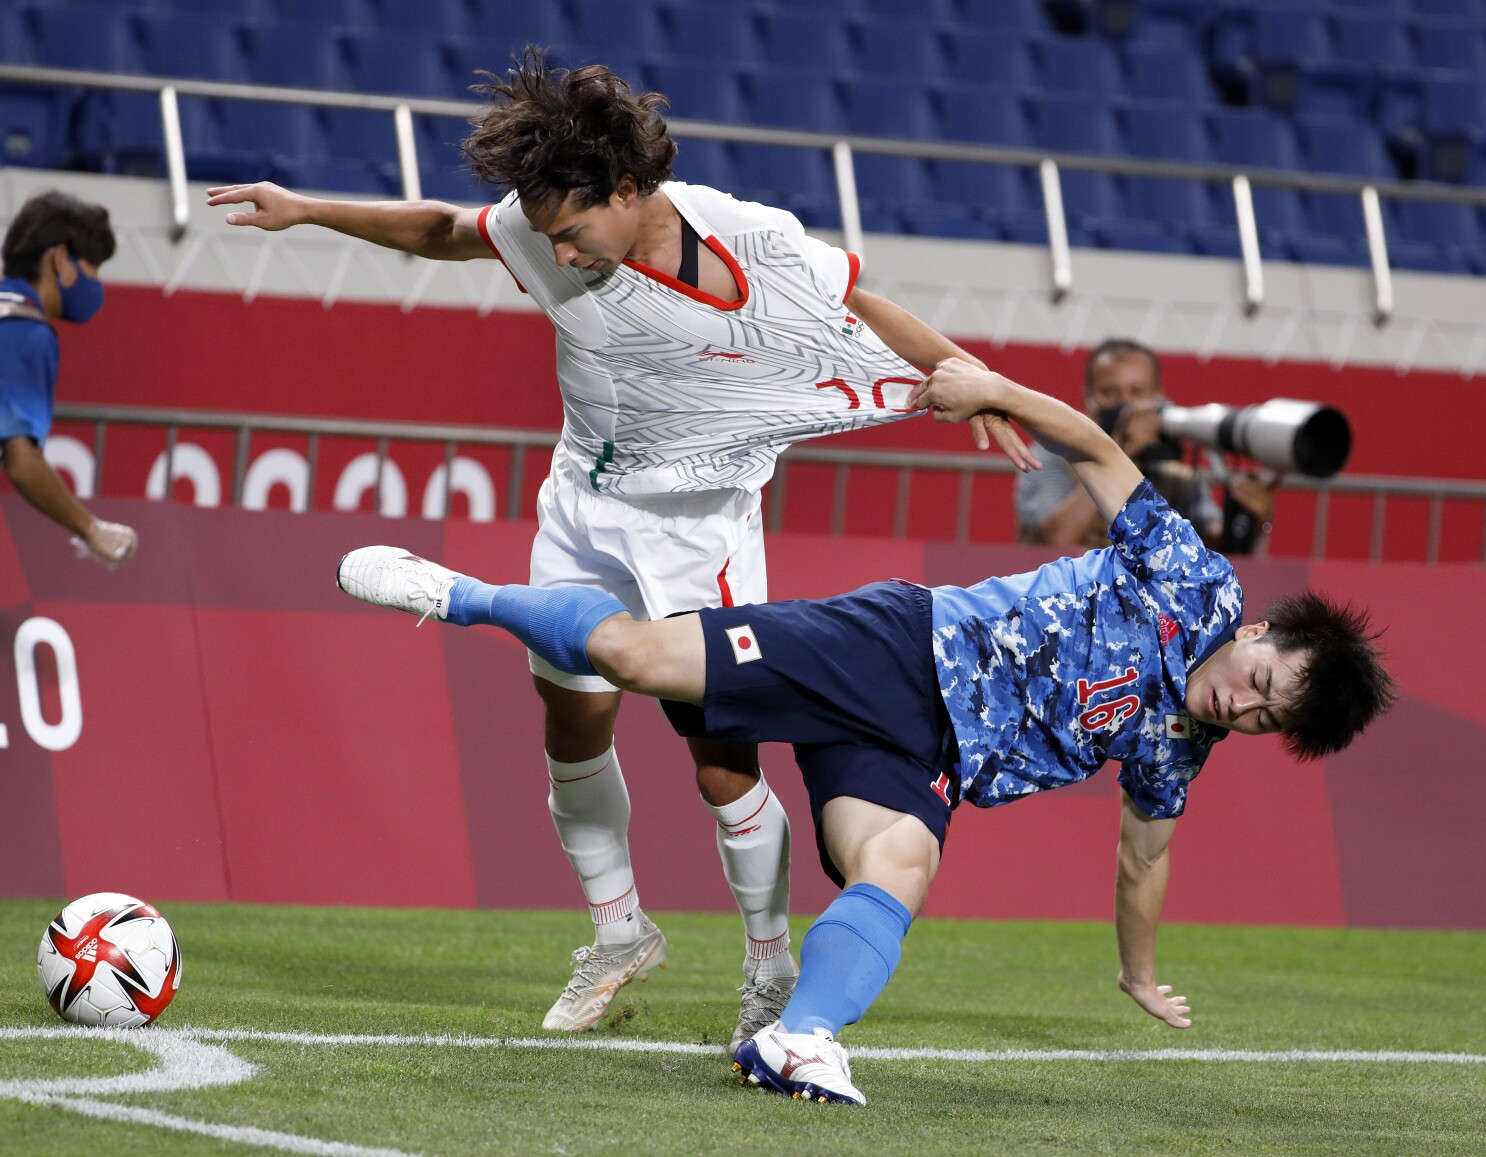 Mexico S Olympics Start Hits Bump In Soccer Loss To Japan Los Angeles Times